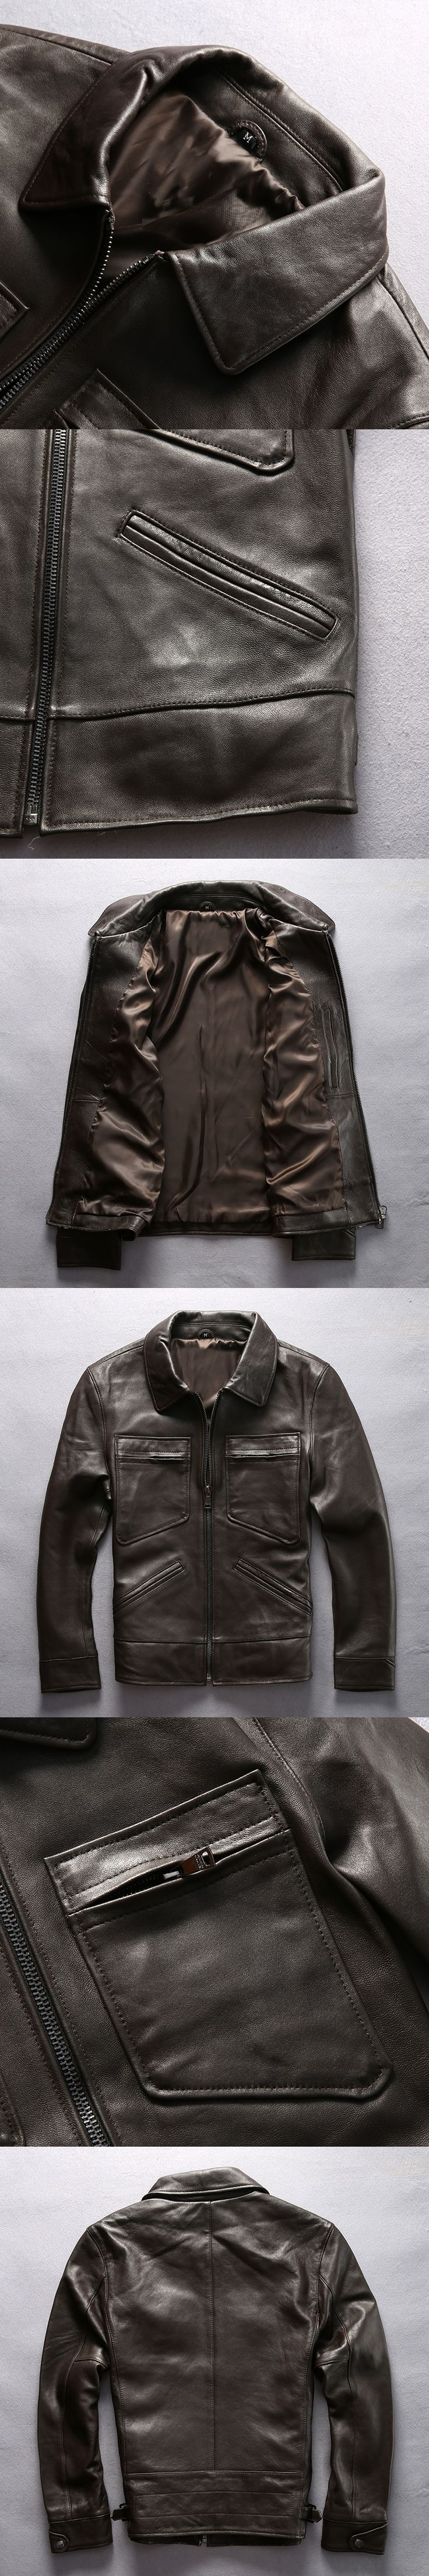 NEW ! Business style slim fit real leather jacket men brown sheepskin casual leather coat for men four pockets smooth leather ja